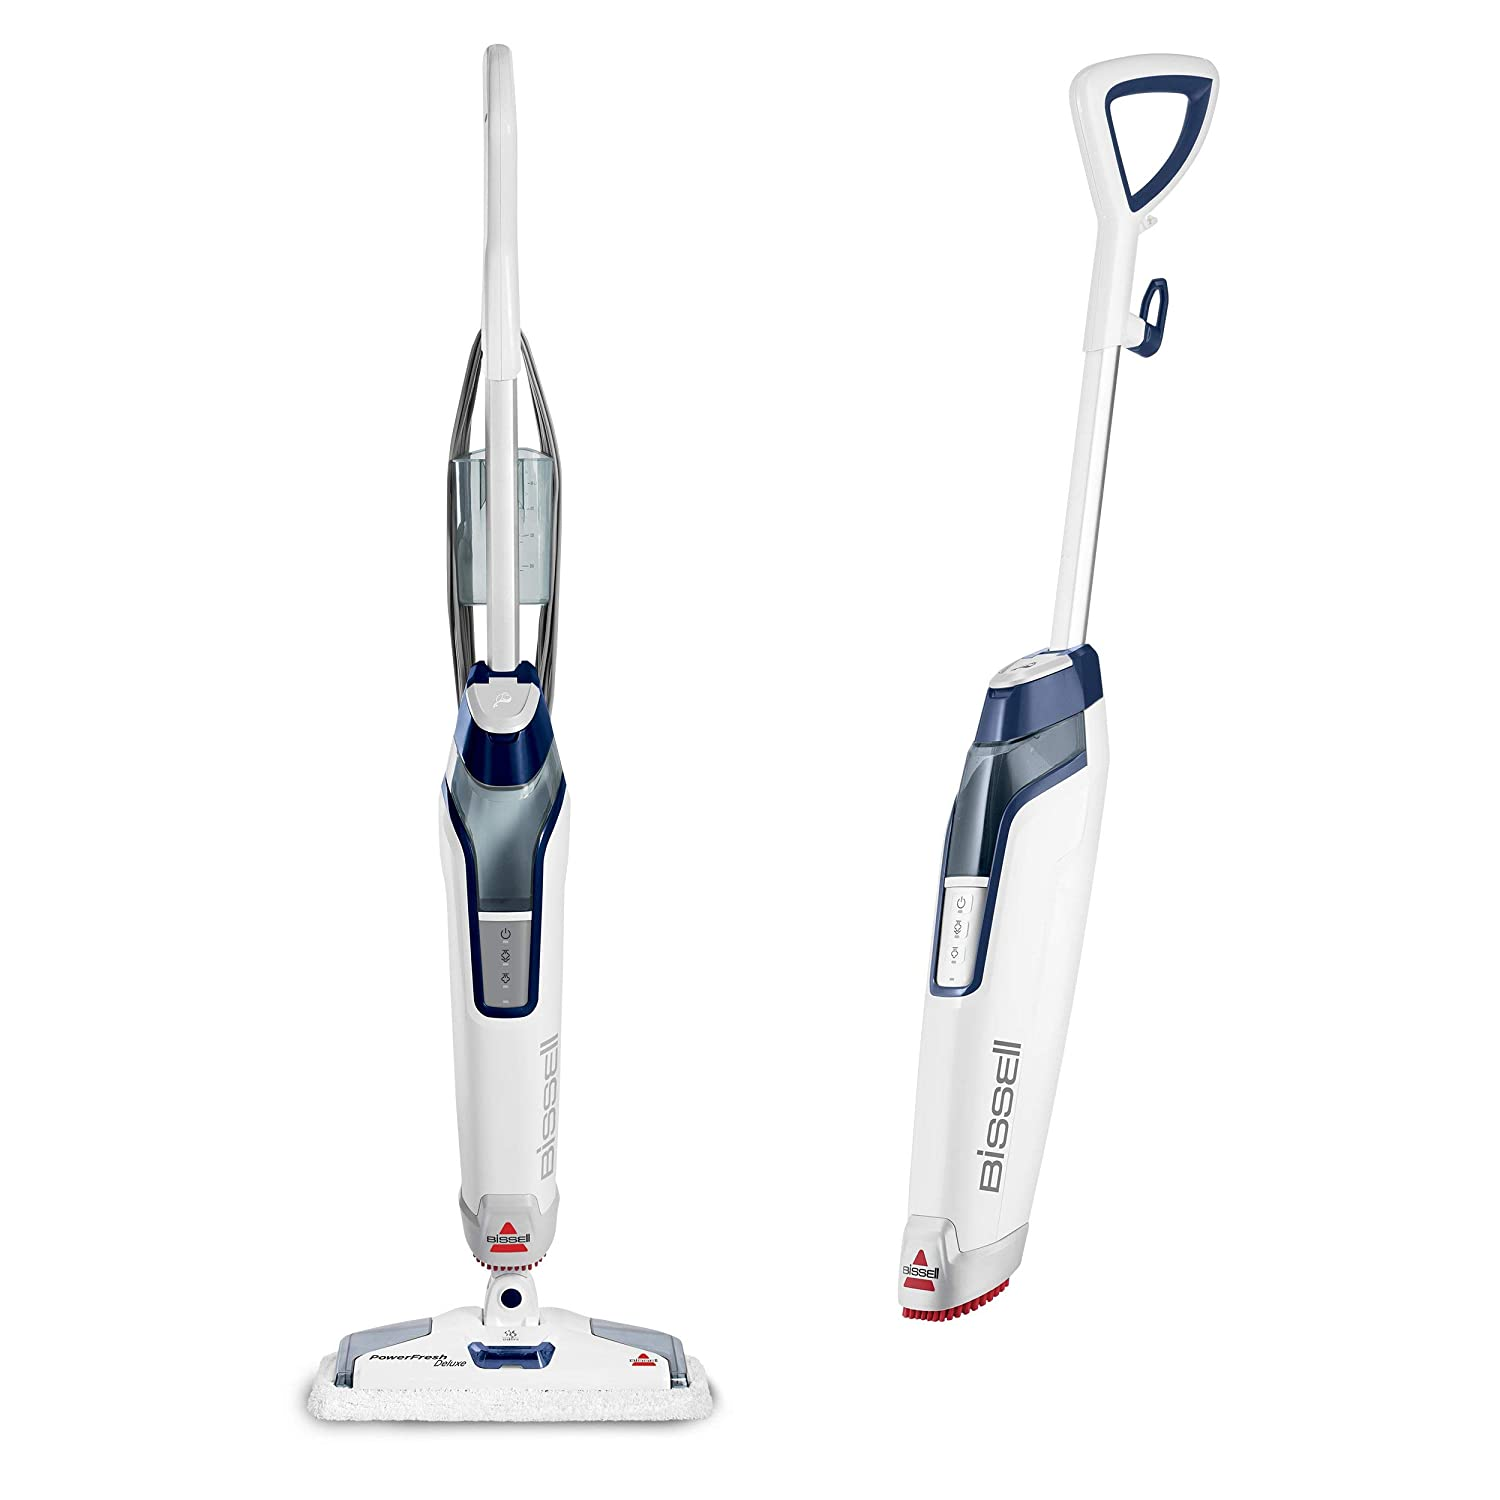 Bissell Powerfresh Deluxe Steam Mop, Steamer, Tile, Hard Wood Floor Cleaner, 1806, Sapphire (Certified Refurbished)